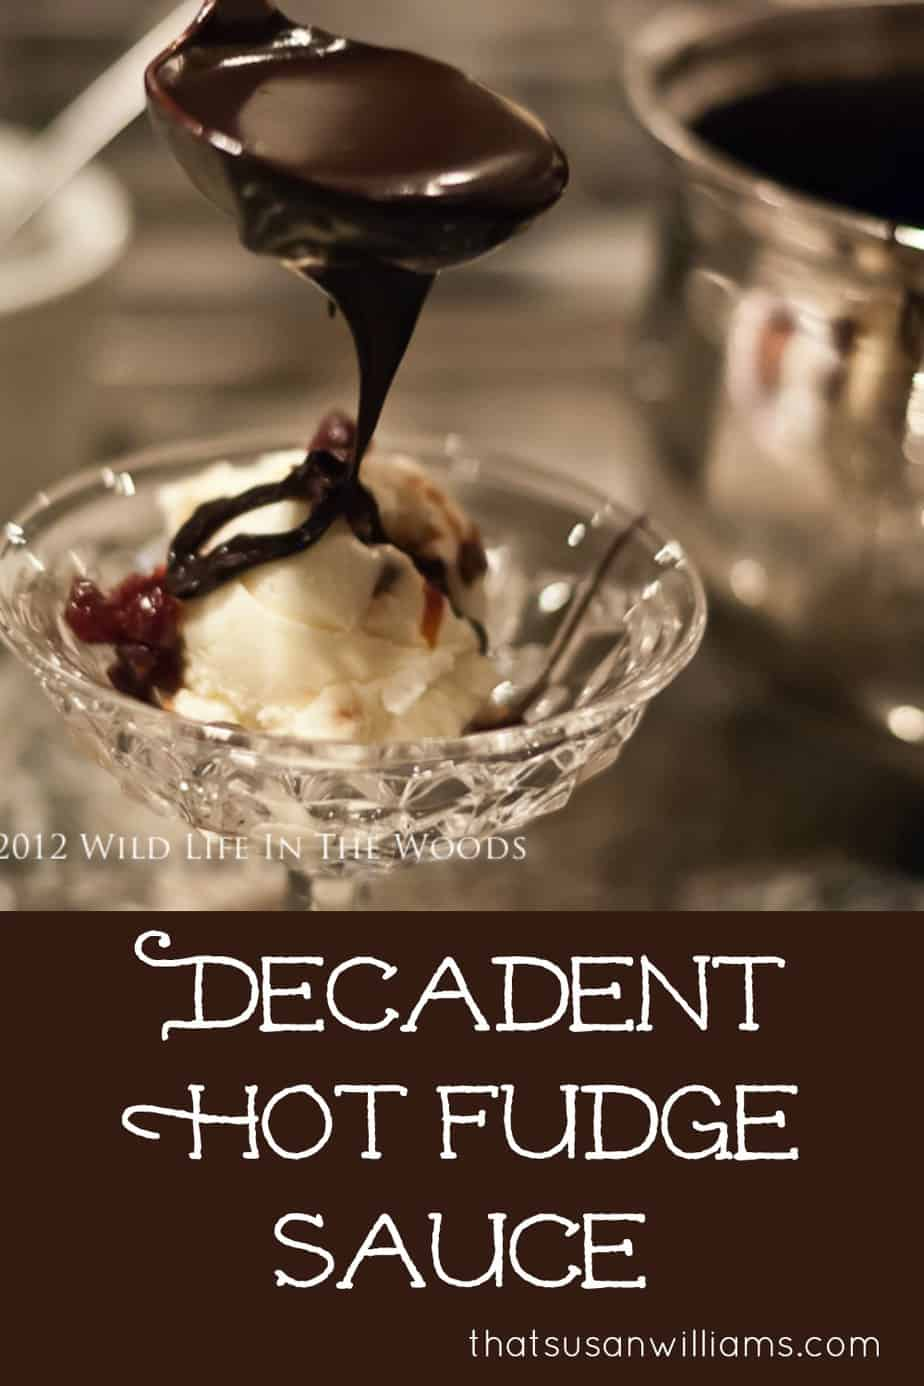 I could eat this Decadent Hot Fudge Sauce Recipe day after day, for the rest of my life, and I'd groan with pleasure, every time. You've GOT to try it! #hotfudgesauce #homemade #recipe #foricecream